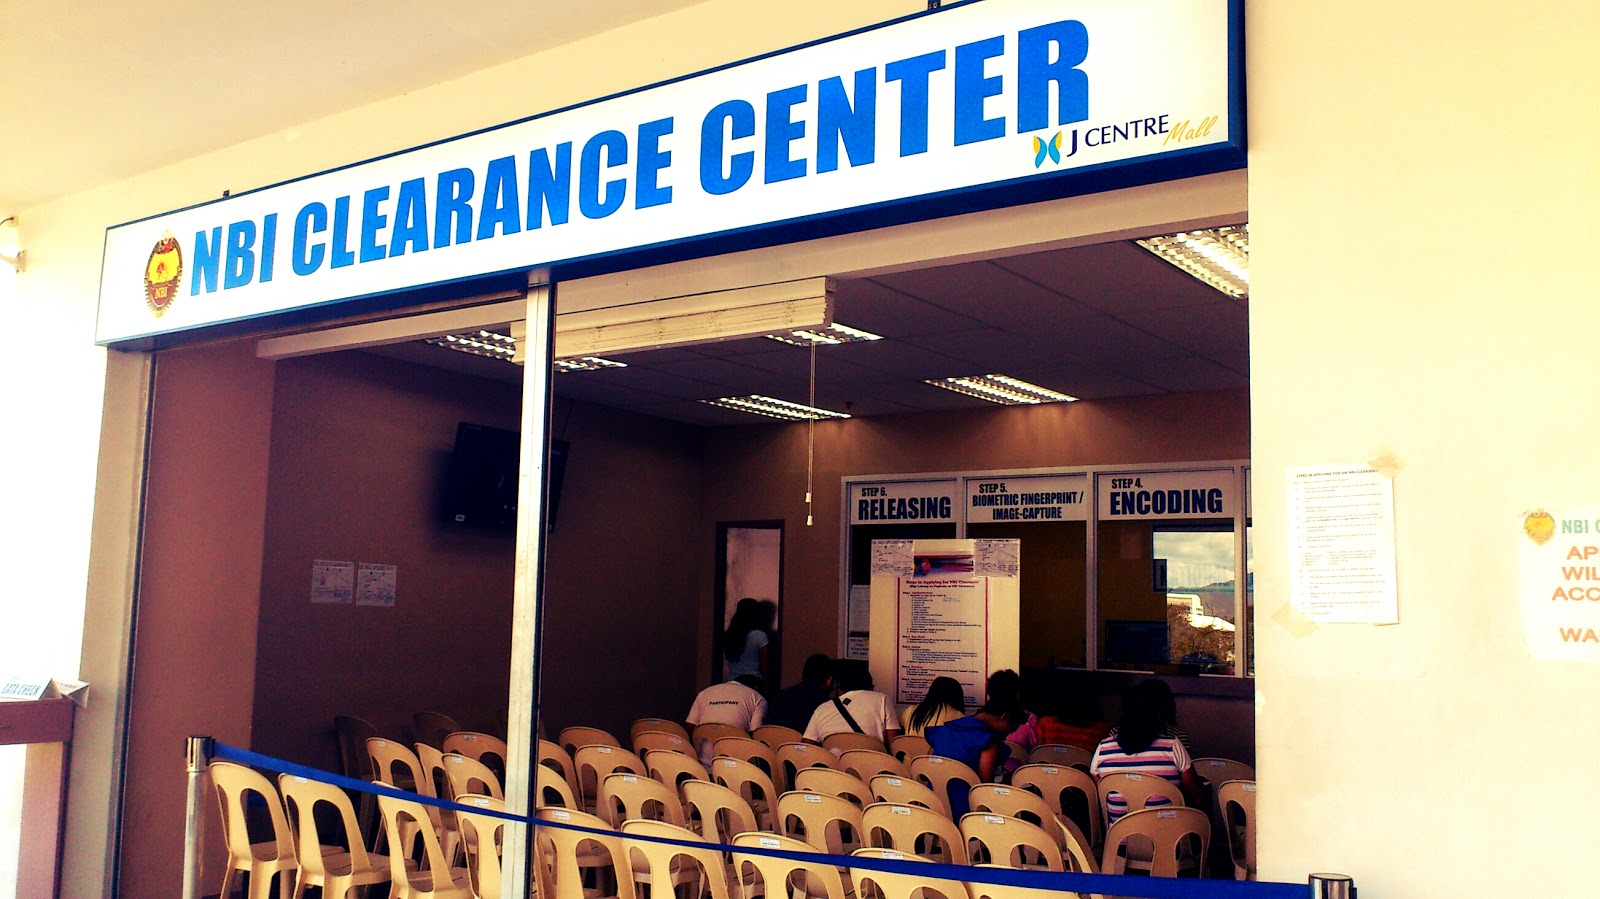 Getting an NBI Clearance at J Centre Mall on a Saturday